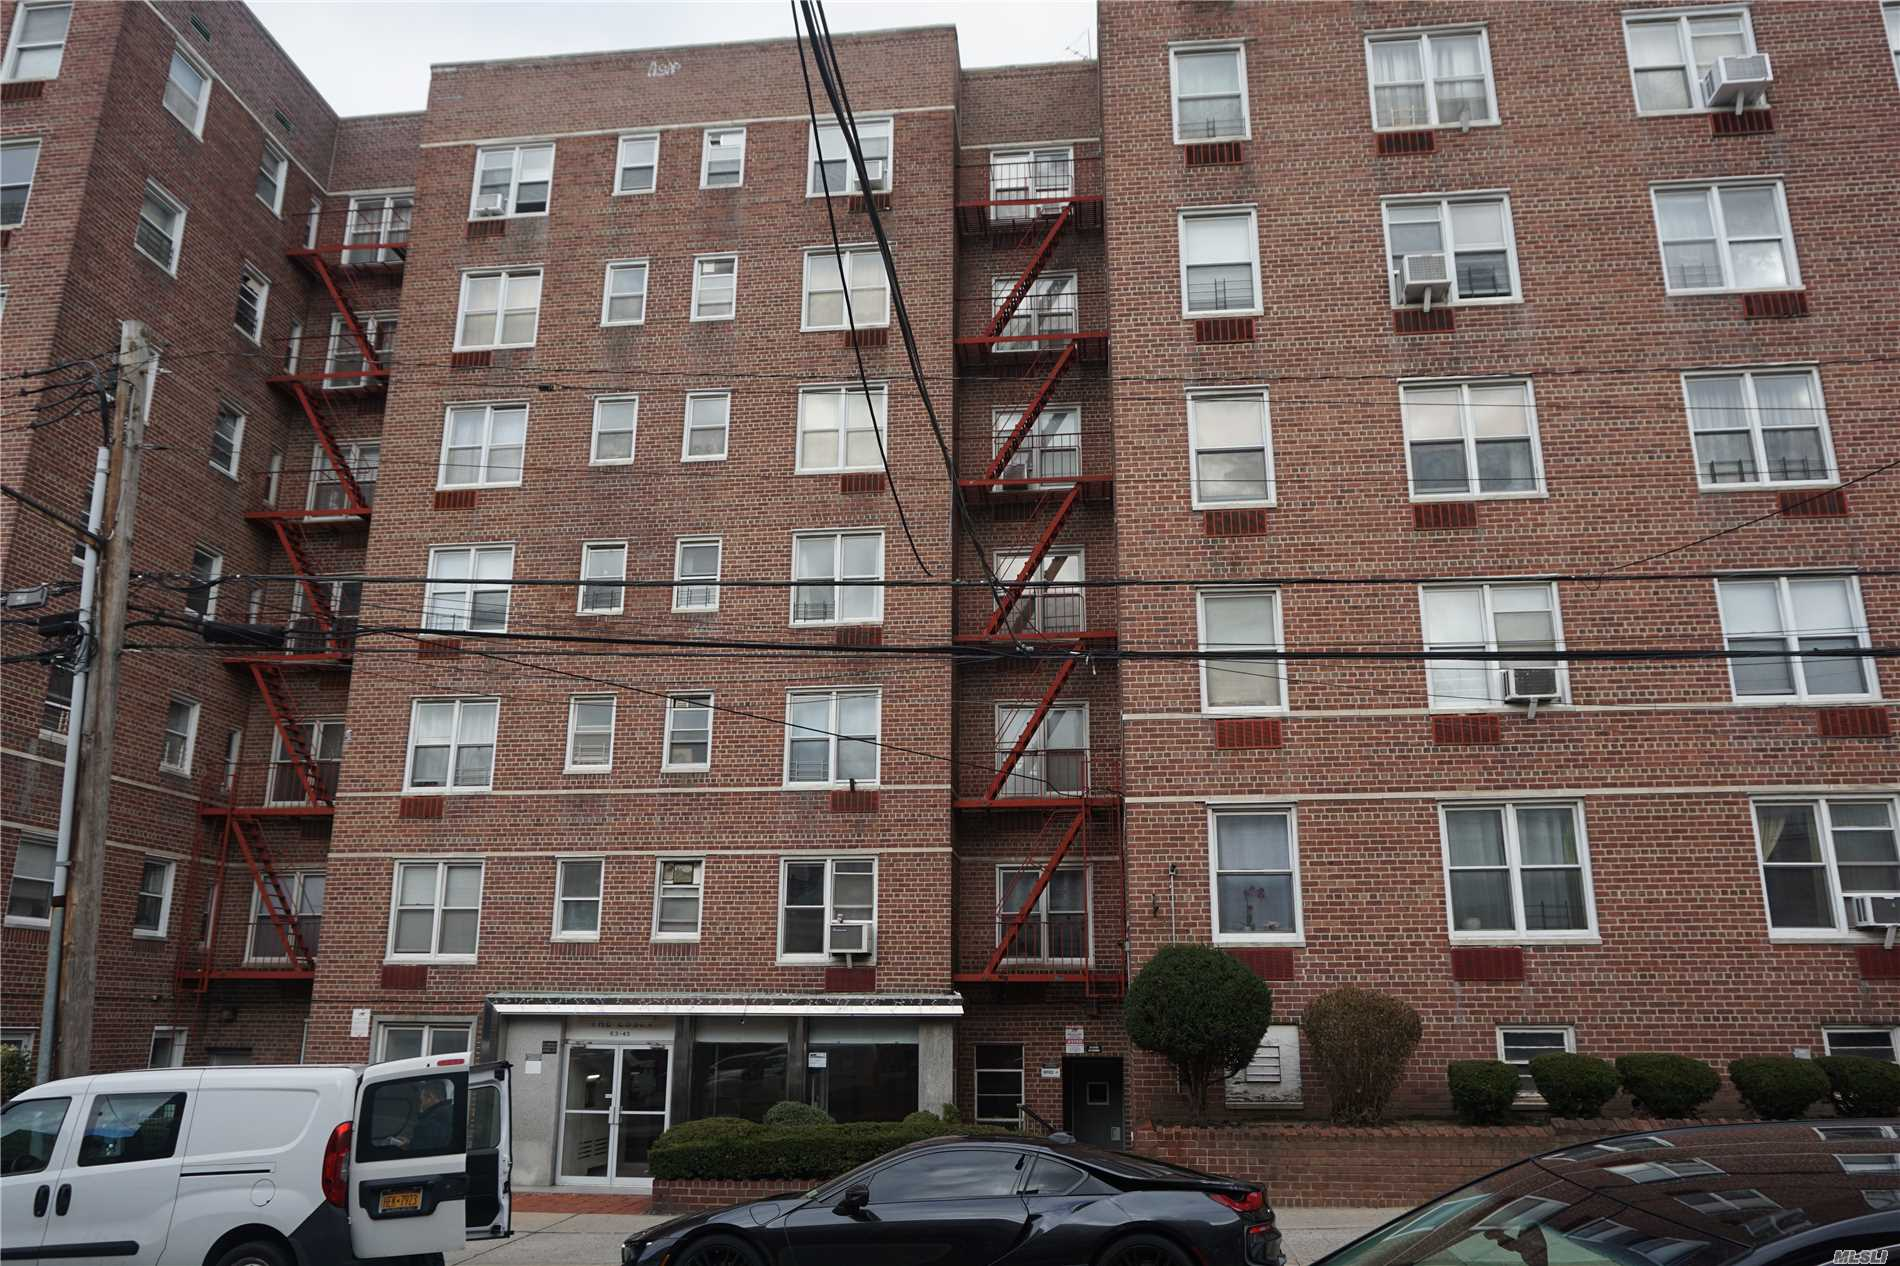 800 Sqfts, New Renovation And Hardwood Floor, Updated Kitchen With Marble Top, Both Kitchen And Bathroom Have Window, 28Prime School District, Top Ps139 Only One Block Away, 1/2 Block From M&R 63 Drive Stop. Pet Are Allowed, Sublease After 2 Yrs, Owner Prefer Cash Deal.